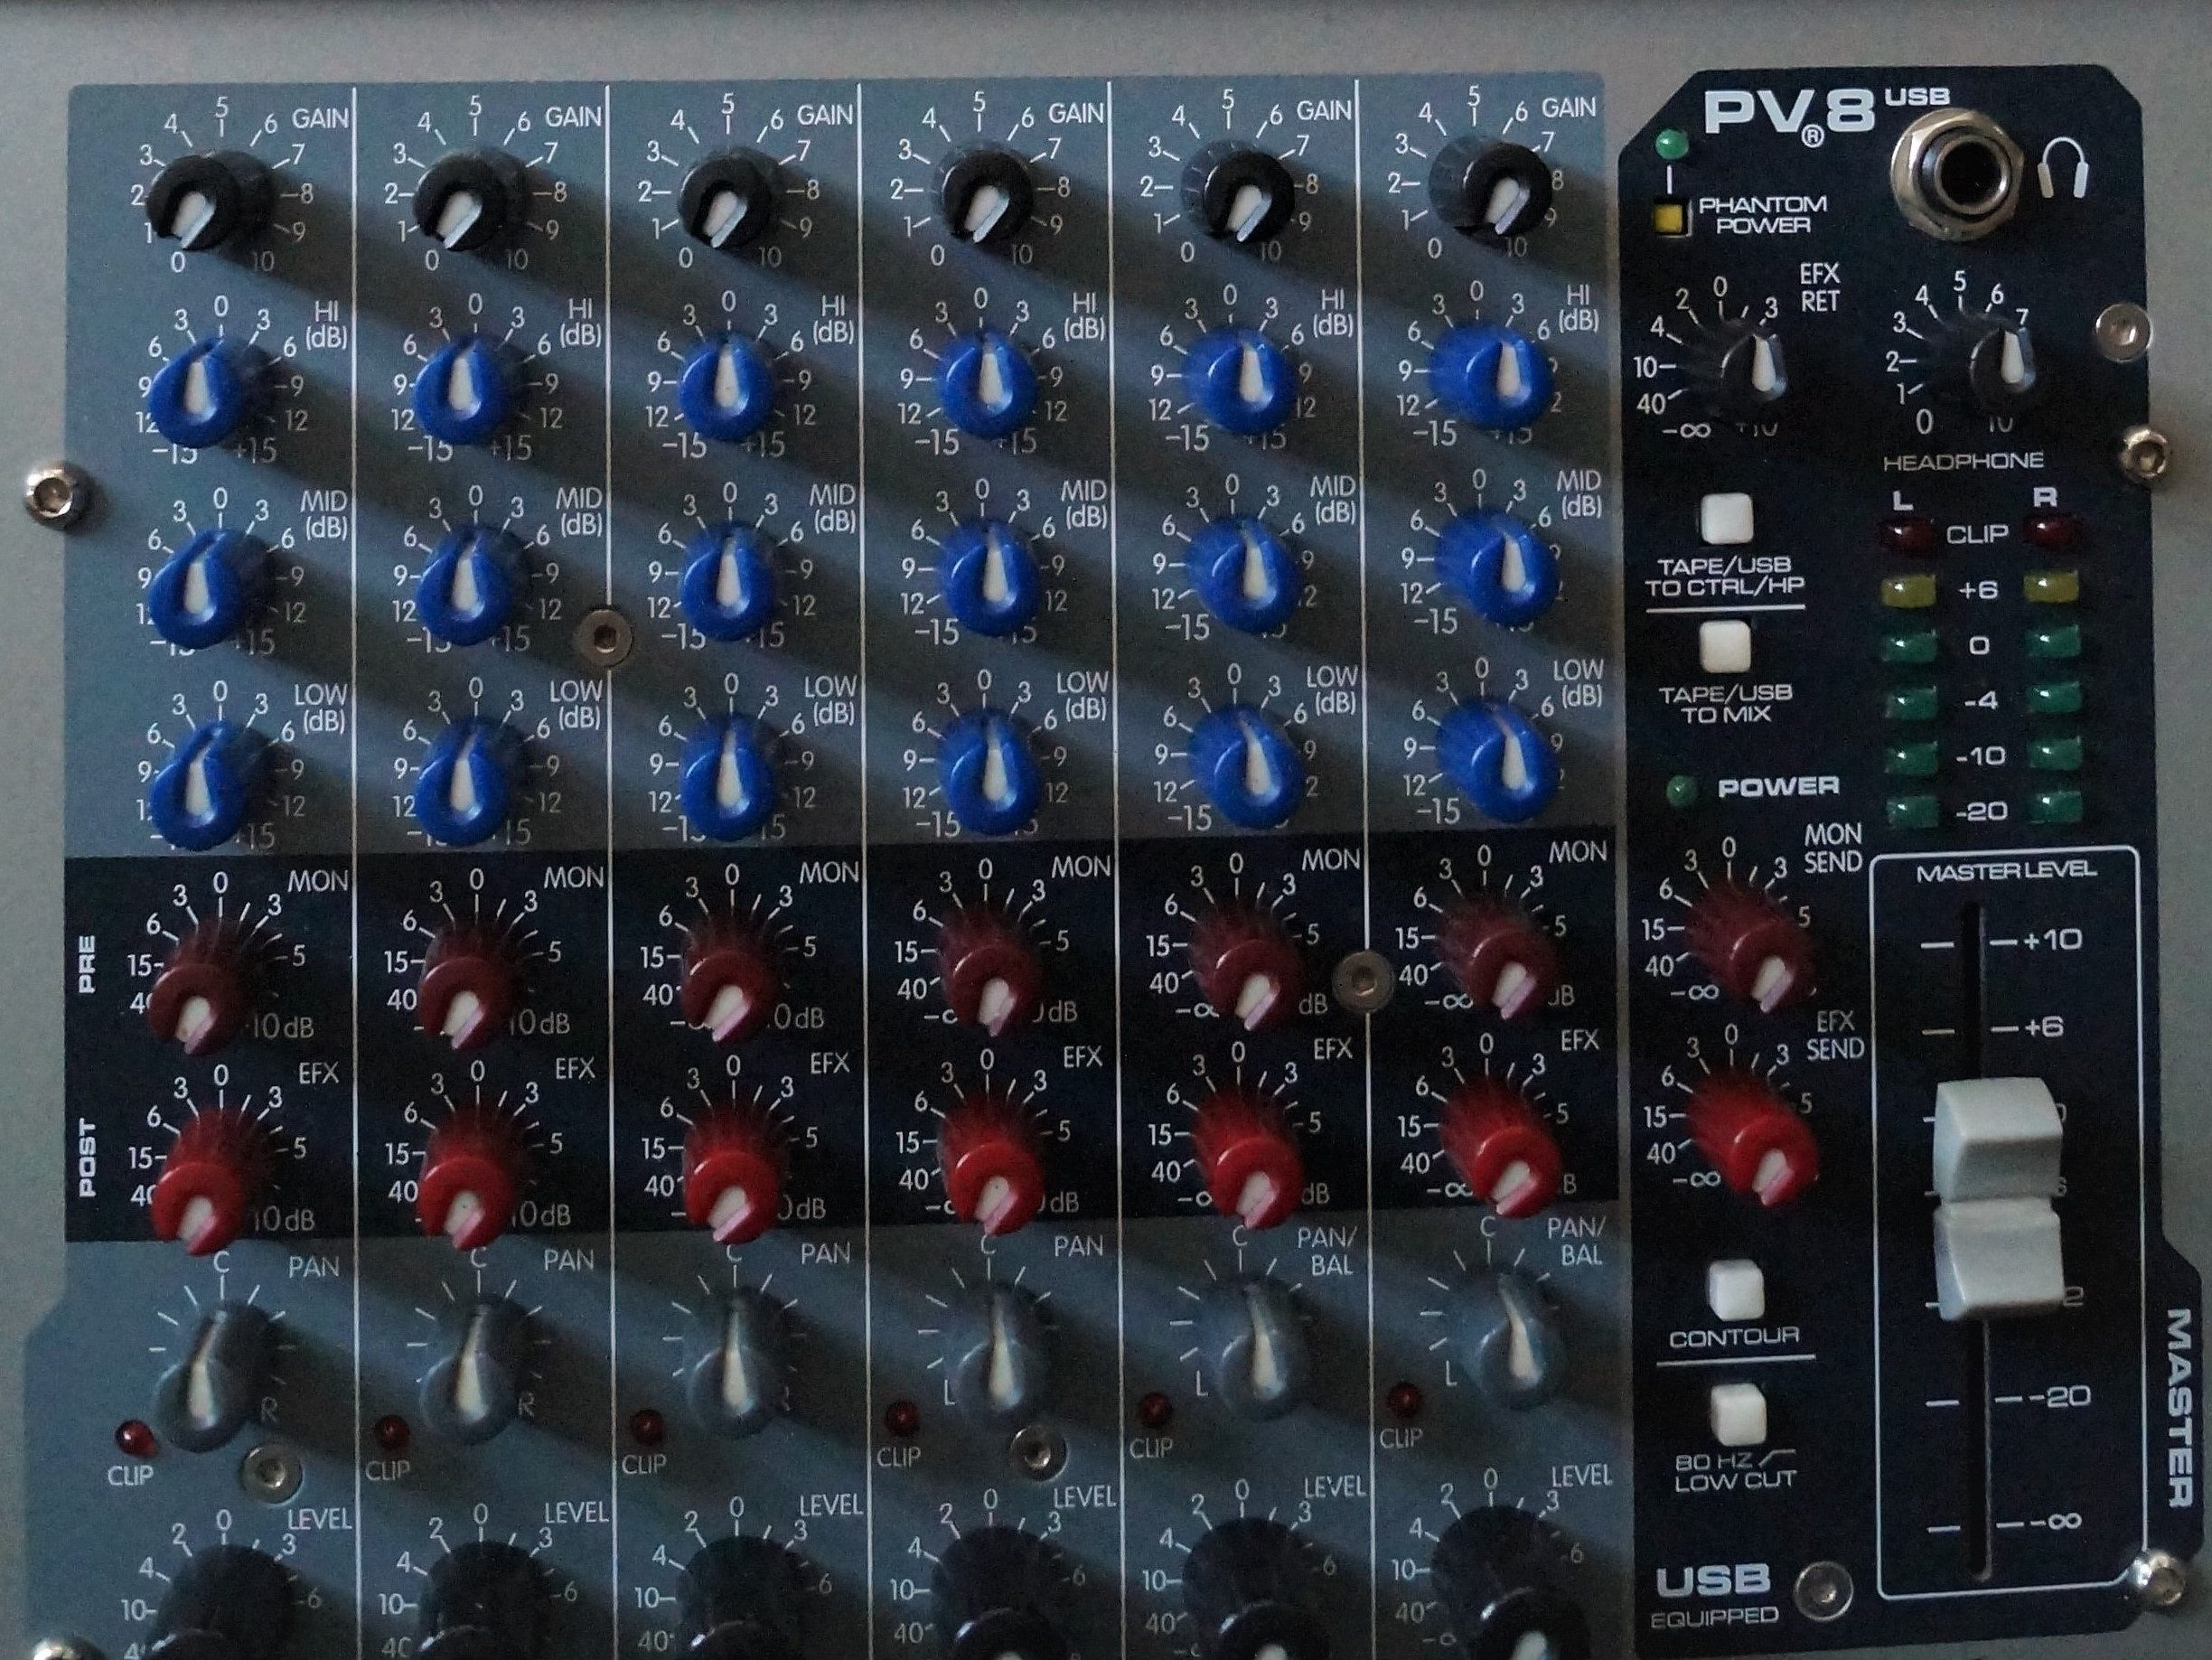 Peavey PV8 USB mixing console/stereo USB Digital Audio interface.